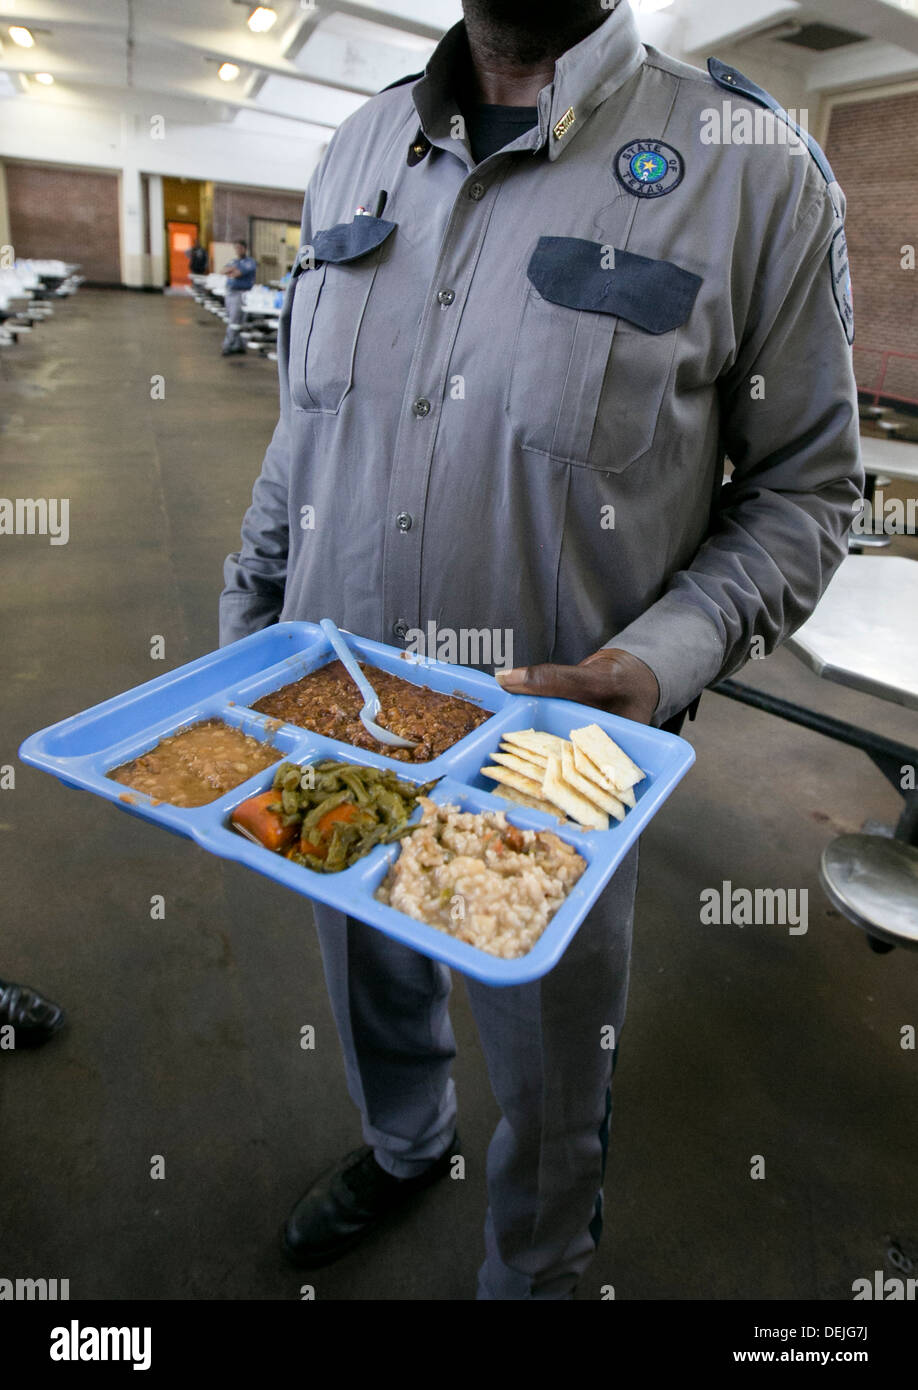 hook up jail food What's on the menu in jail inmates make up the majority of the kitchen staff at the clark inmates cause few issues while working in the jail's food hub.